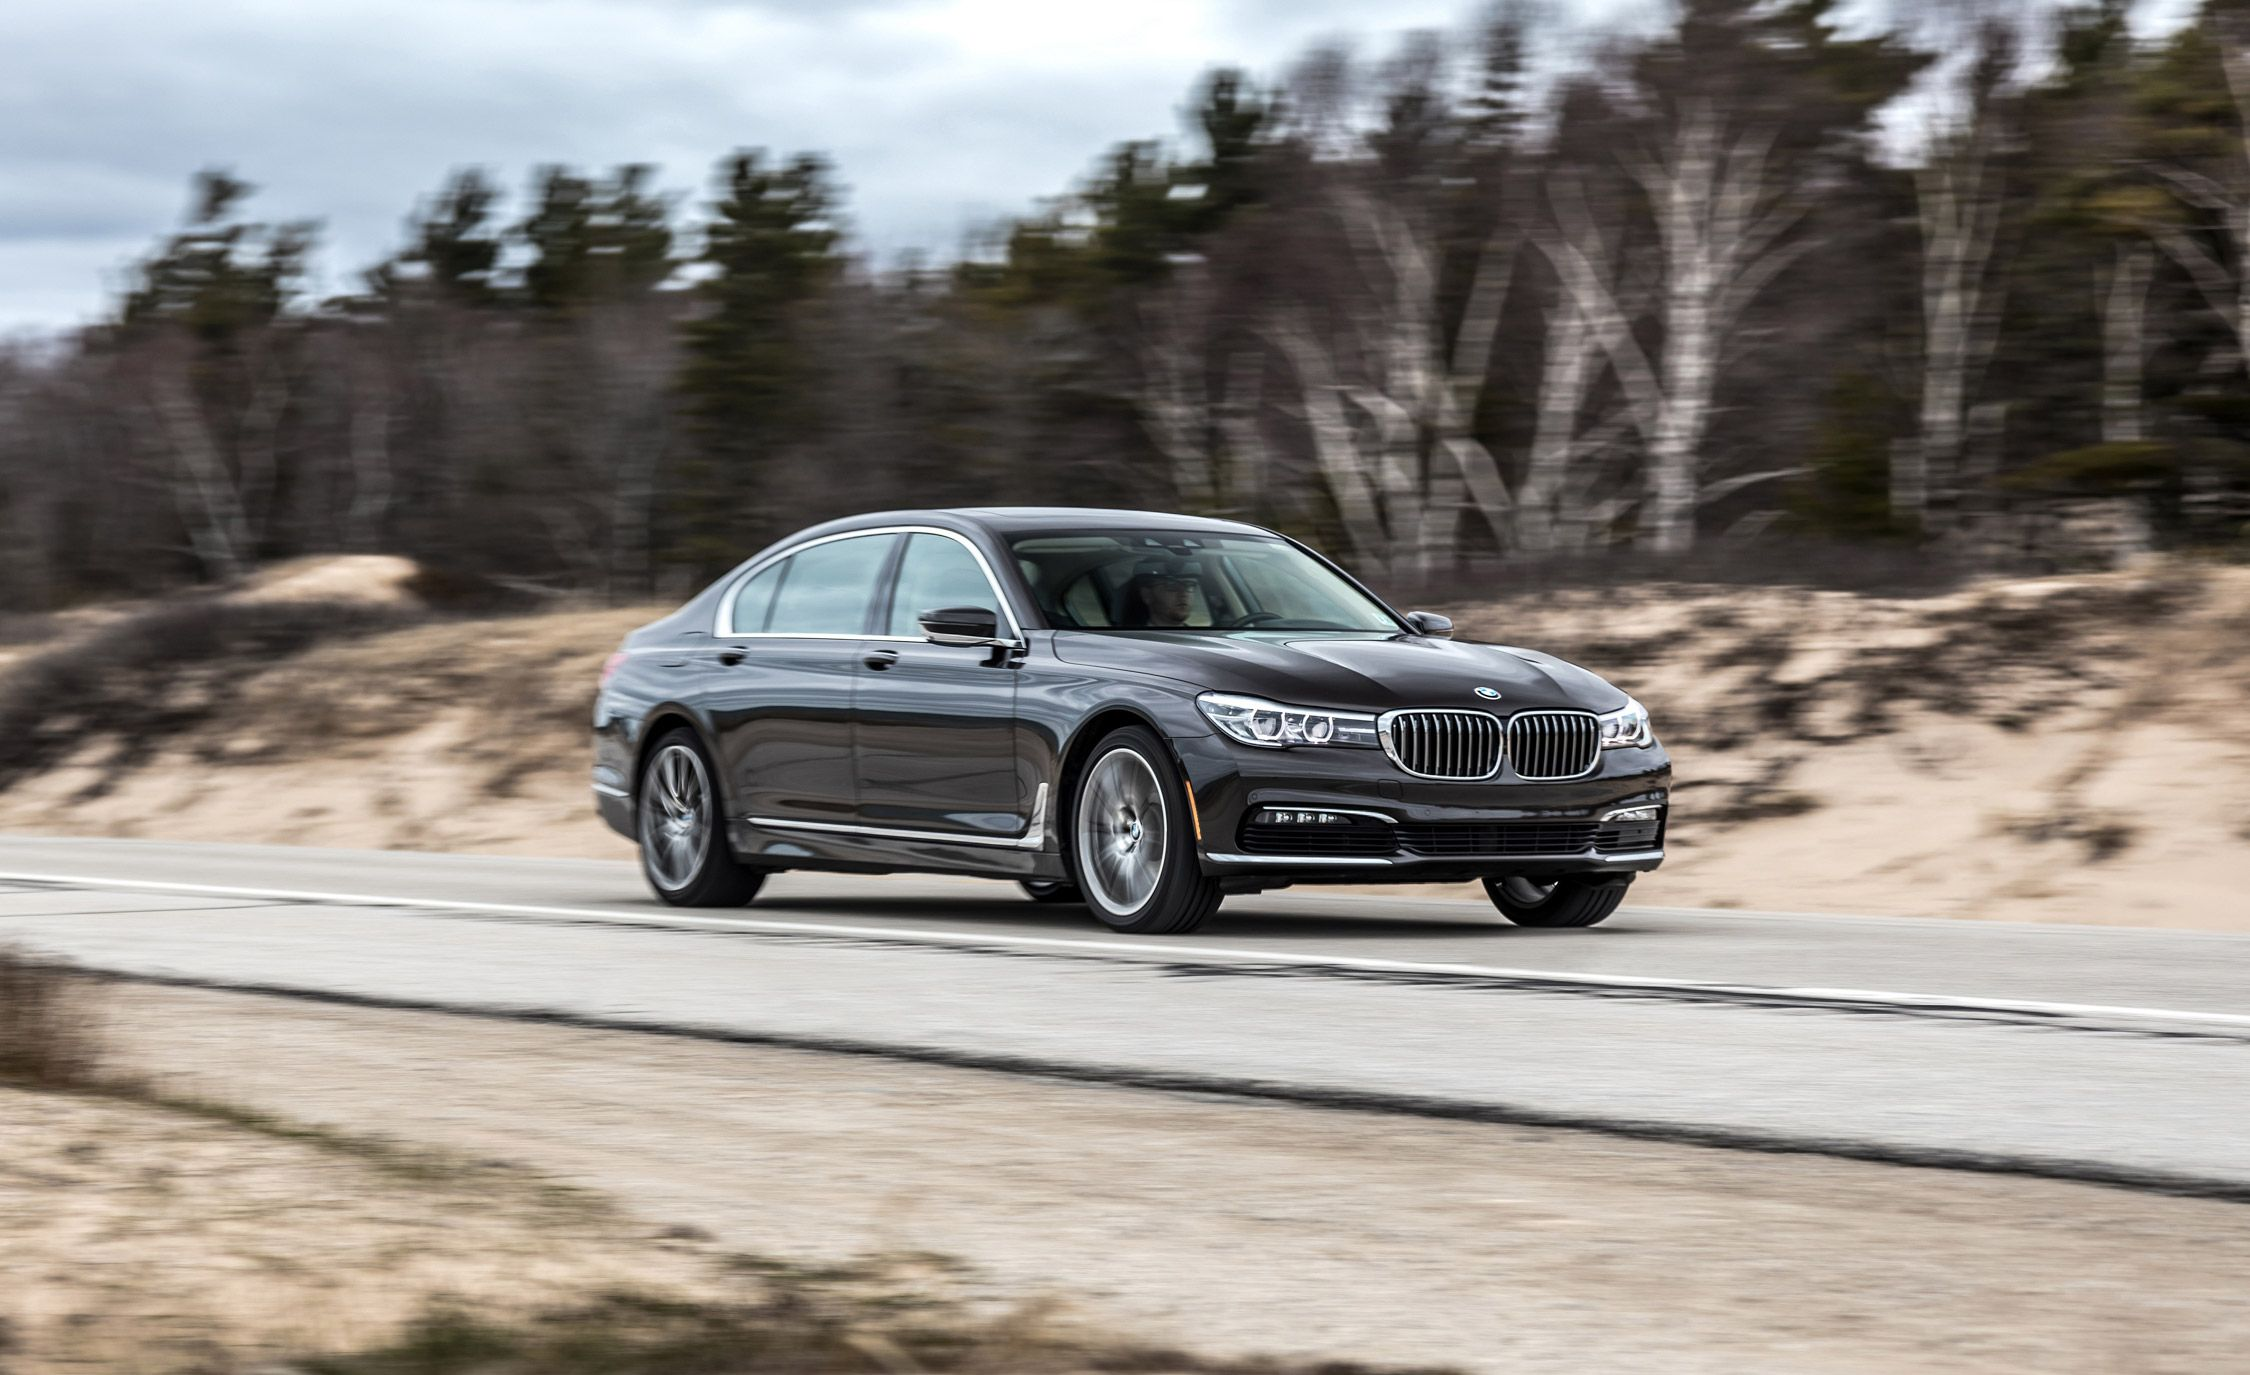 medium resolution of 2016 bmw 740i long term test review car and driver wiring diagram bmw f01 further return to top of page also bmw wheels